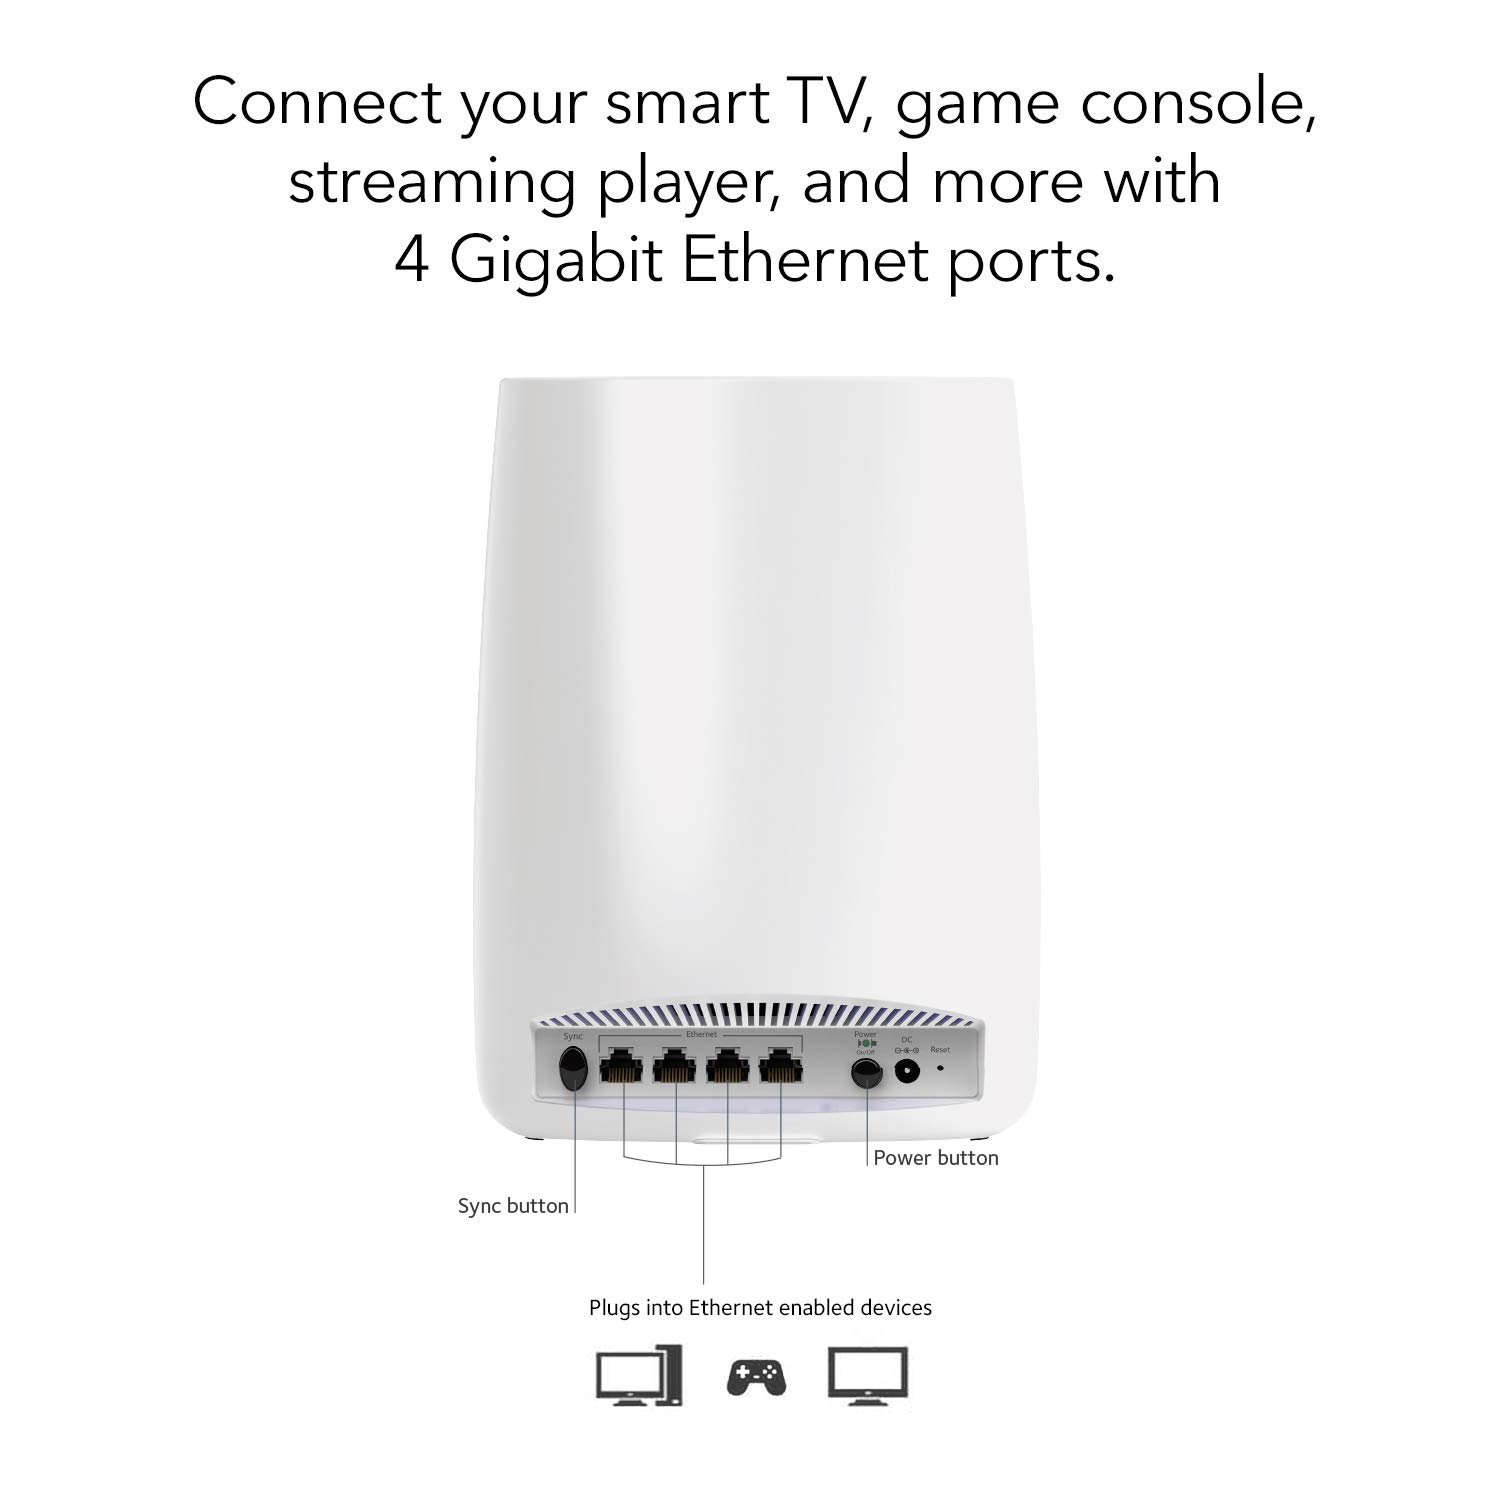 NETGEAR Orbi Ultra-Performance Whole Home Mesh WiFi Satellite Extender -  works with your Orbi Router to add 2,500 sq  feet at speeds up to 3 Gbps,